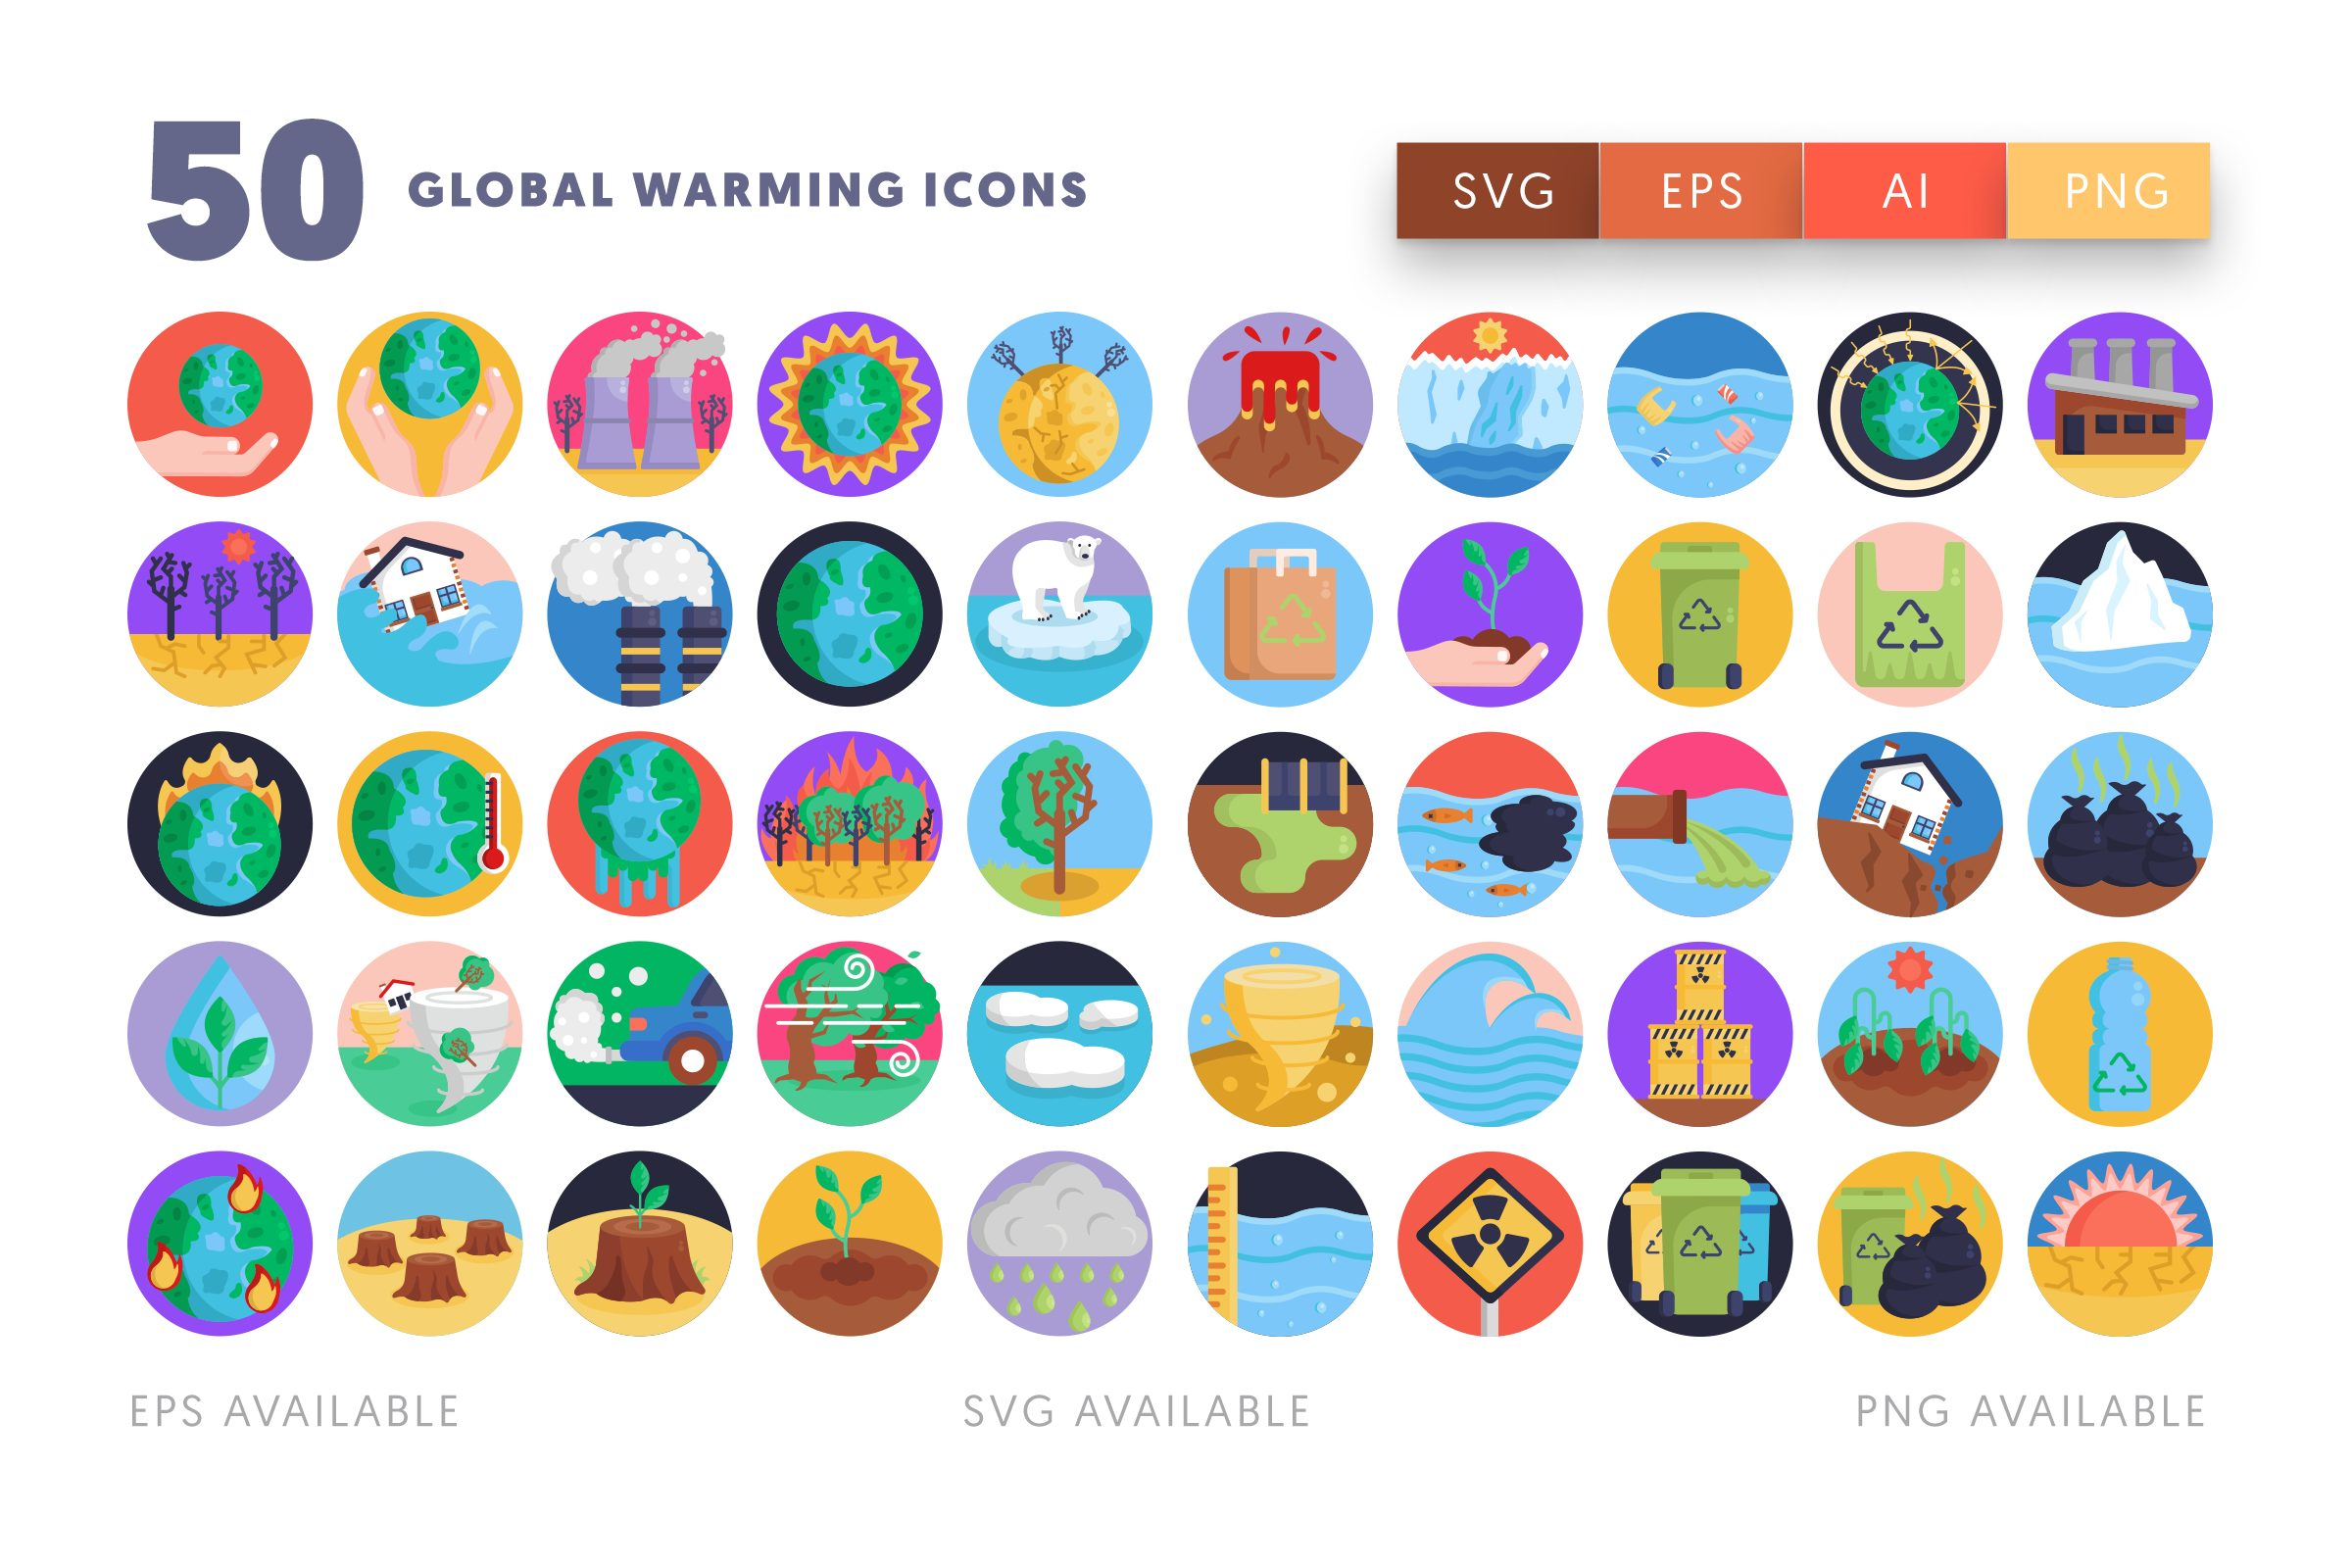 Global Warming icons png/svg/eps